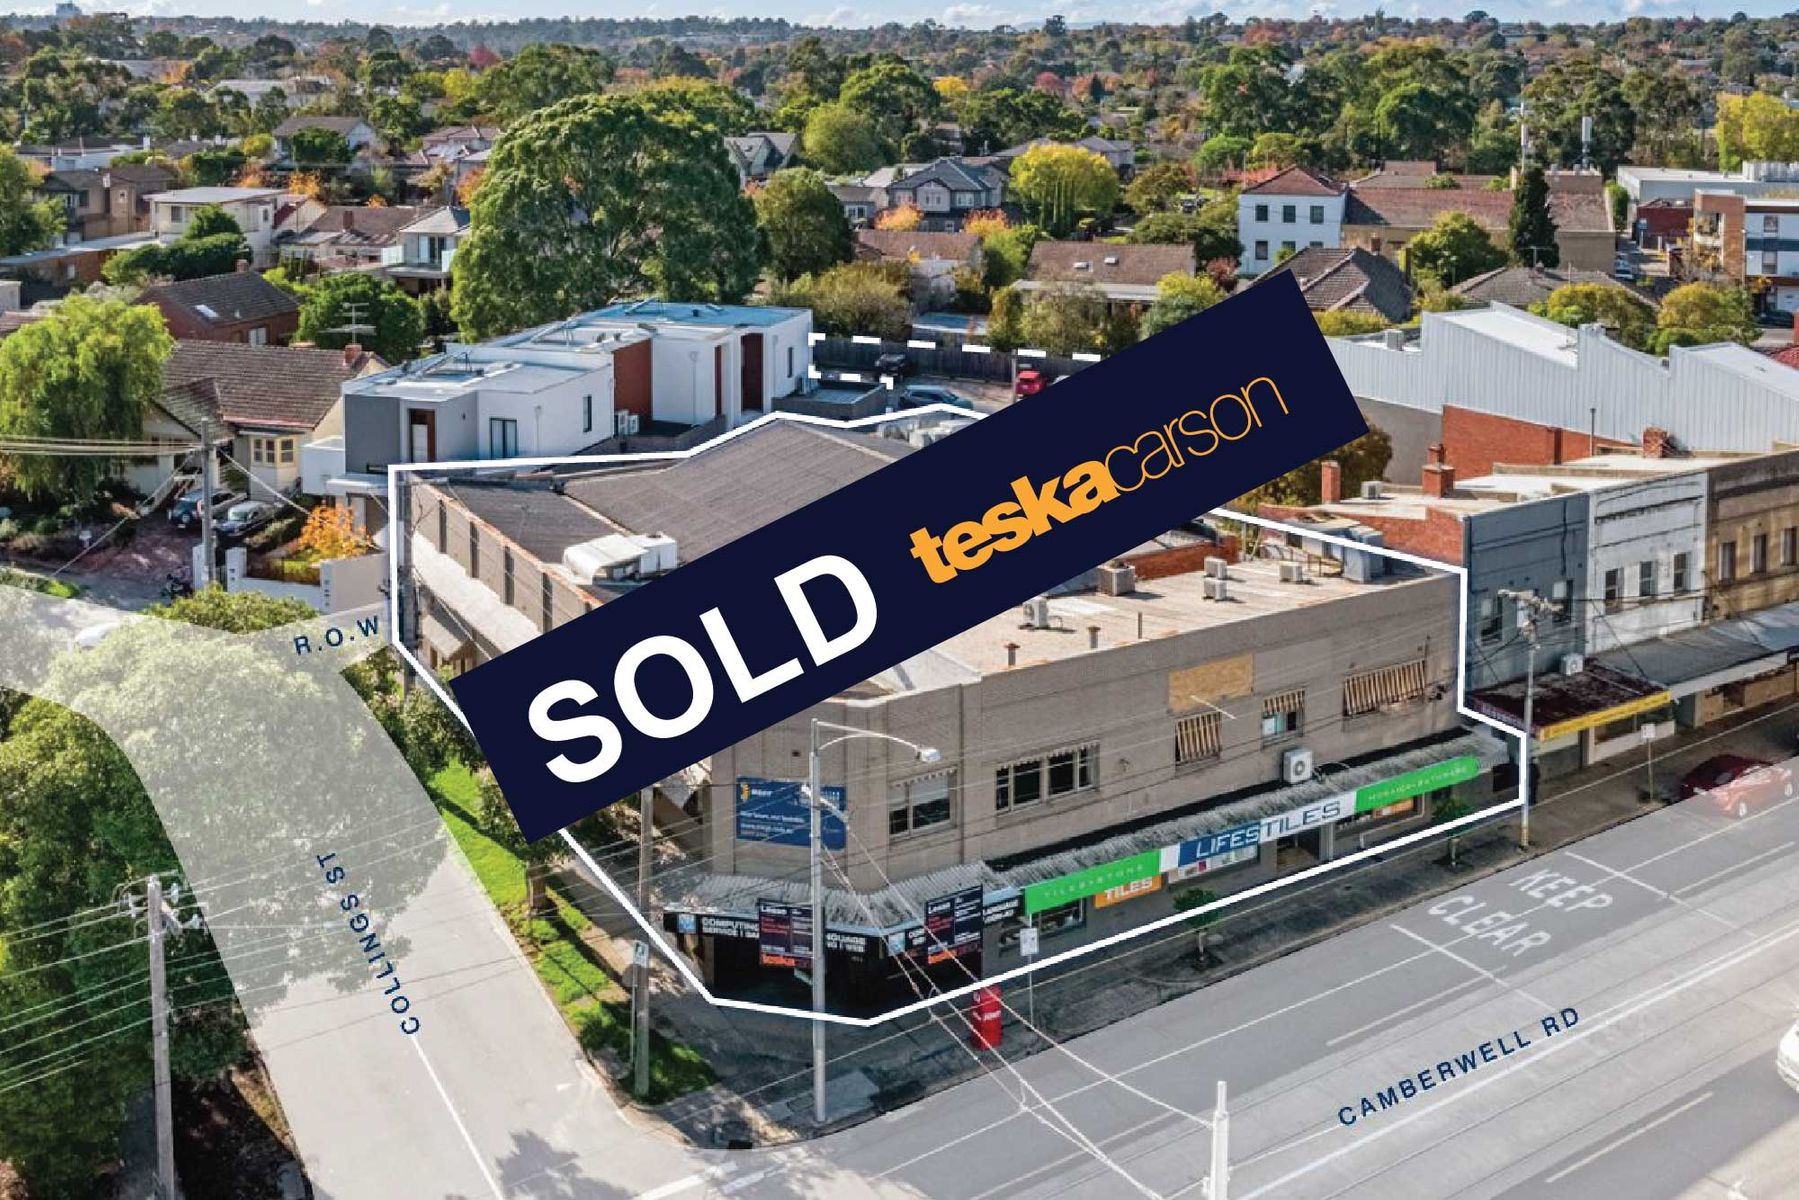 605 609 Camberwell Rd SOLD Banner